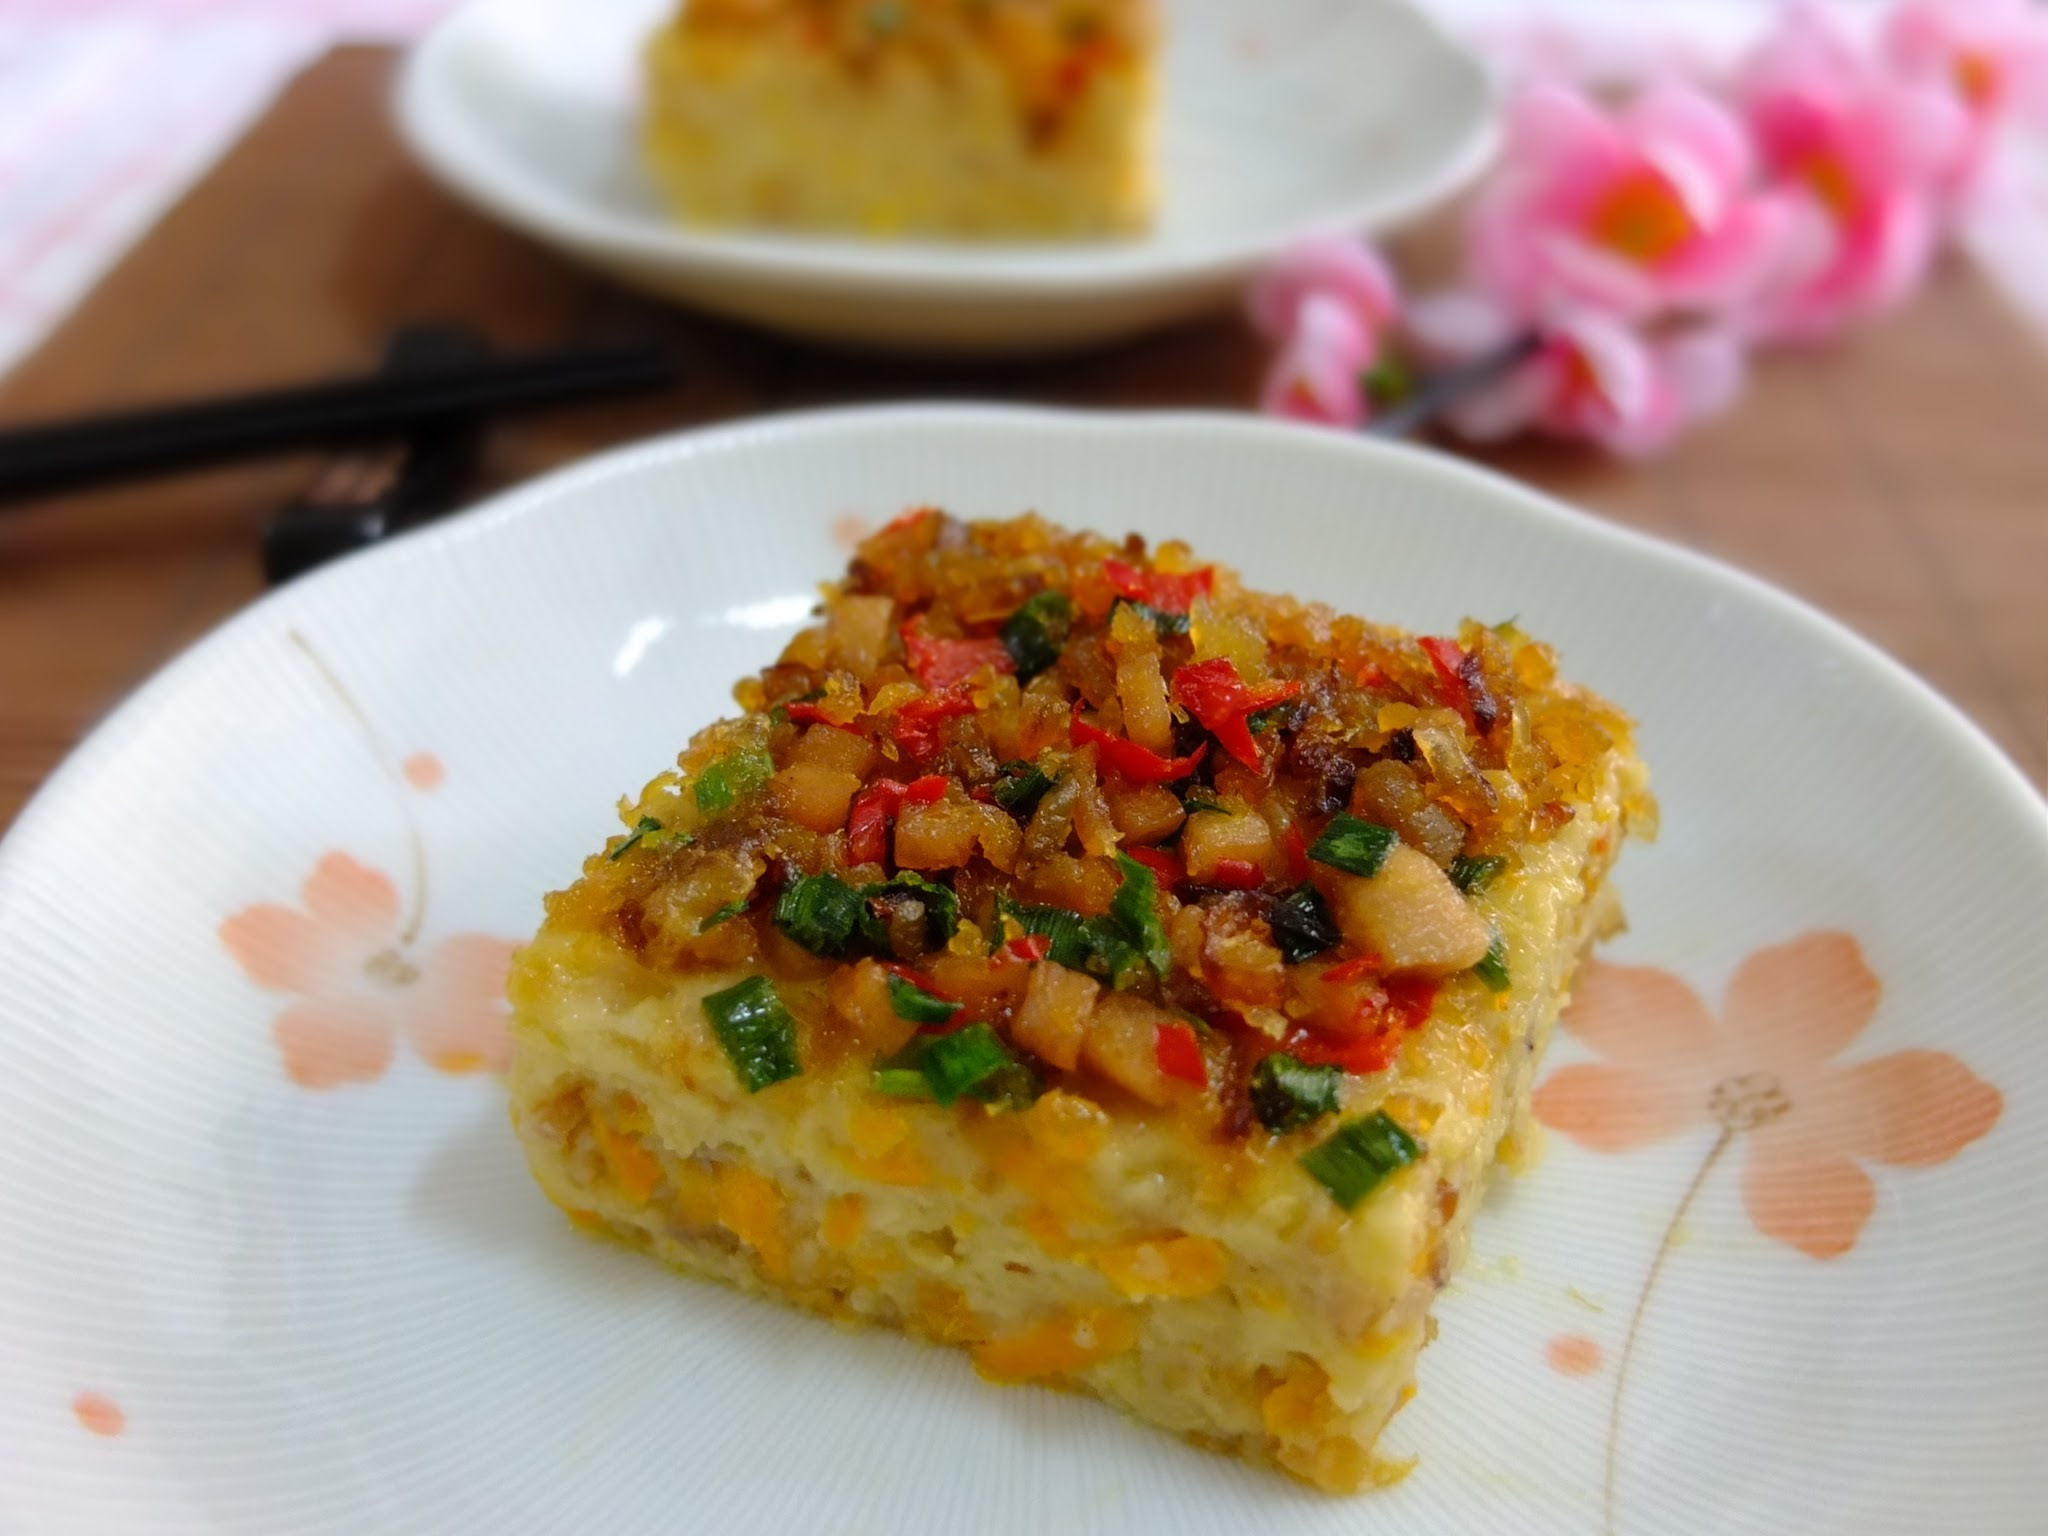 Steamed Carrot and Radish cake (红白萝卜糕)